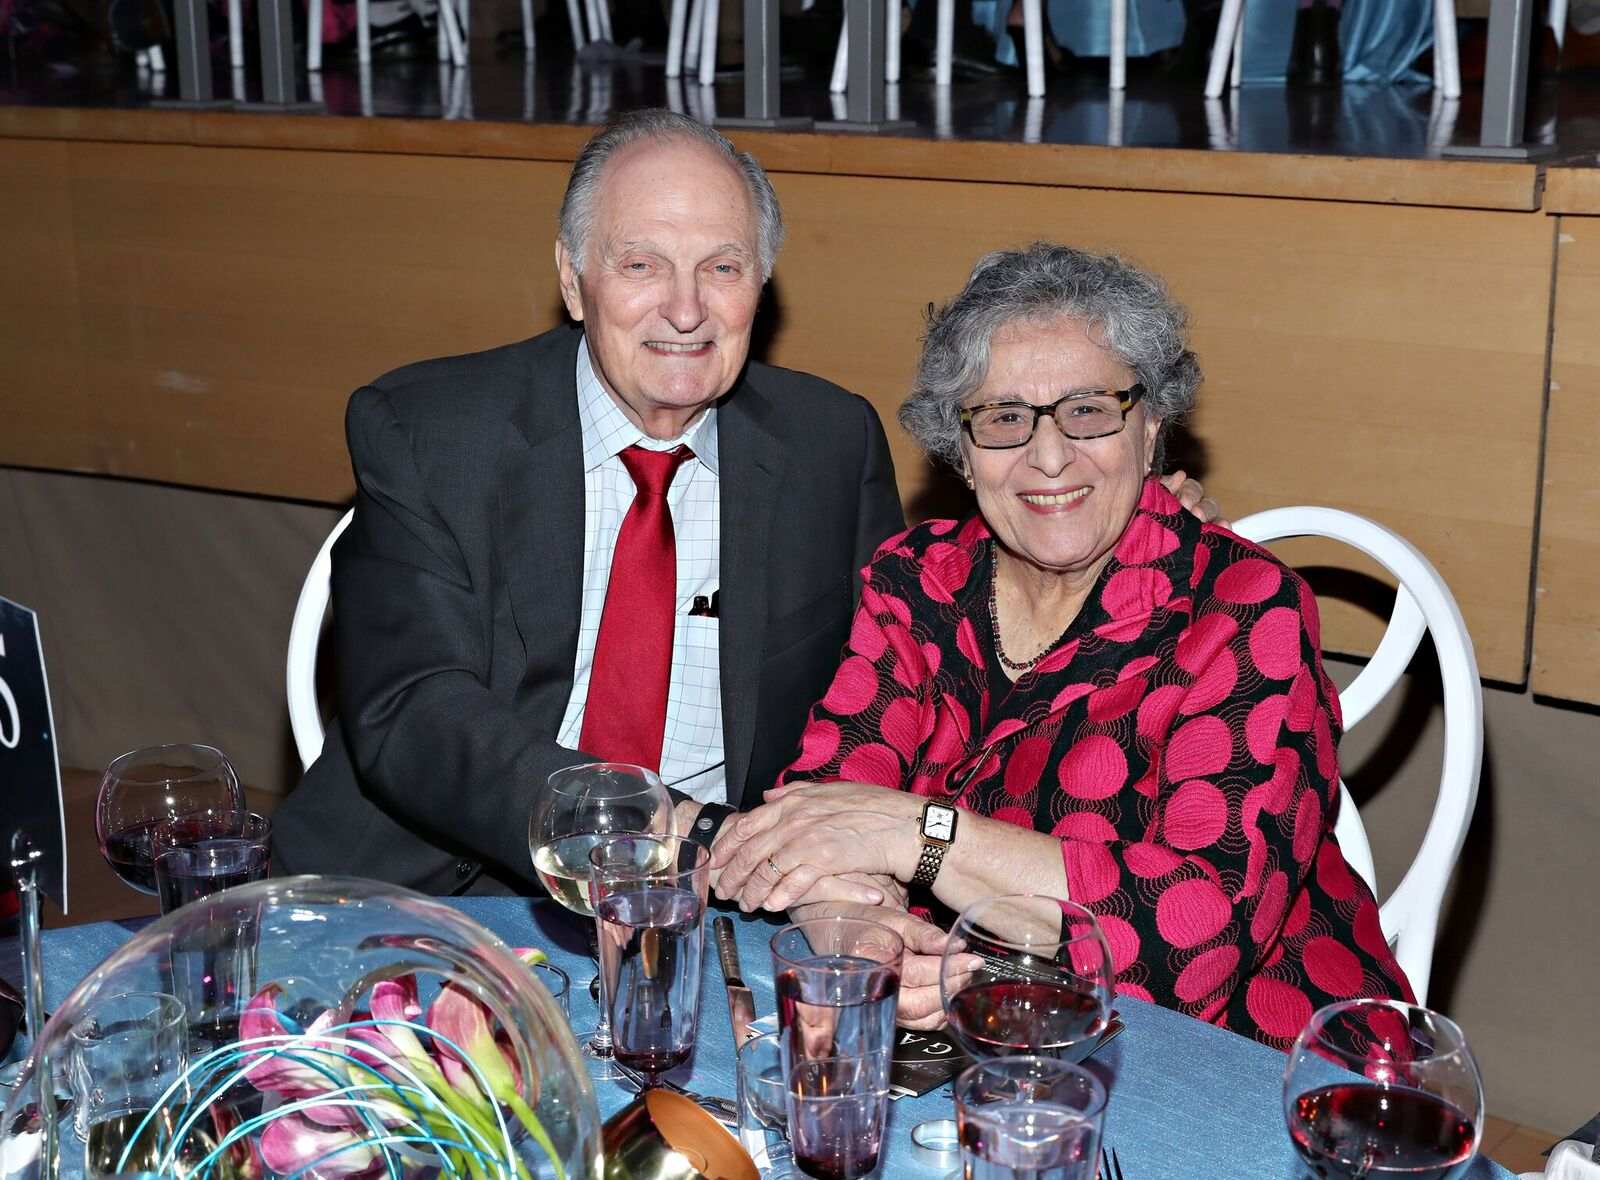 Alan Alda and wife Arlene Alda attend the World Science Festival's 12th Annual Gala at Jazz at Lincoln Center on May 22, 2019. | Source: Getty Images